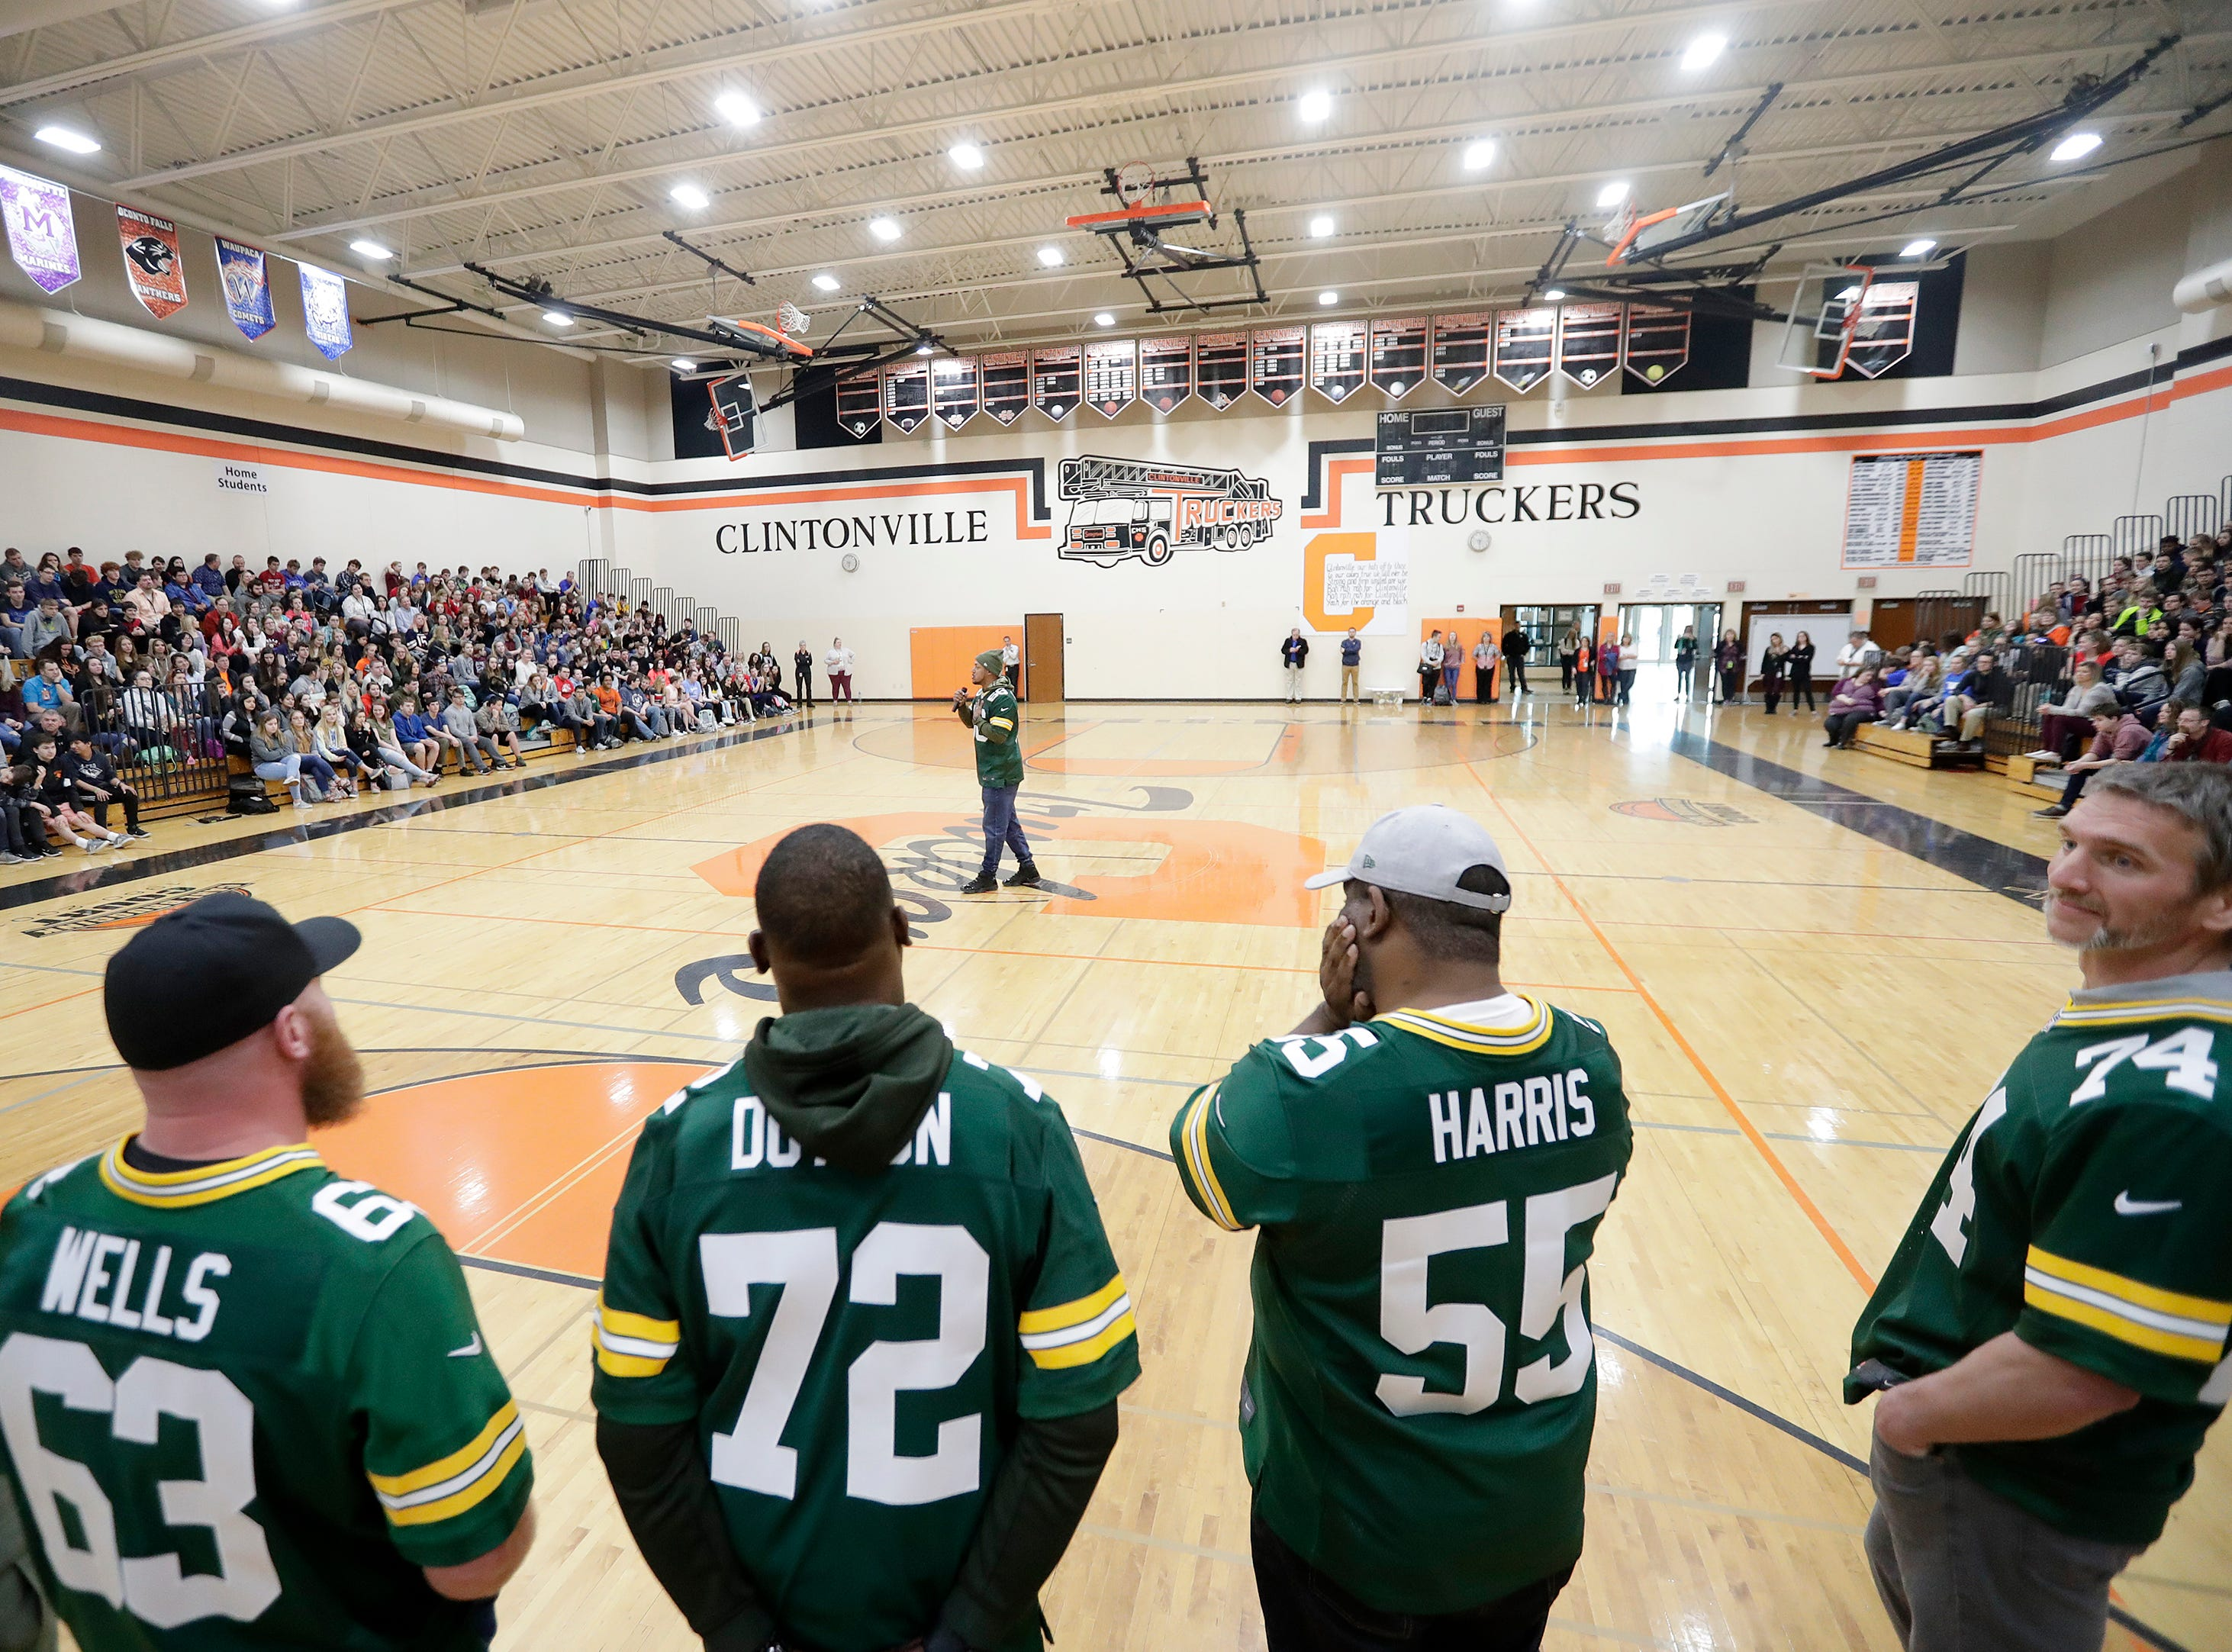 Former Green Bay Packers players stop on the Packers Tailgate Tour at Clintonville High School on Tuesday, April 9, 2019 in Clintonville, Wis.